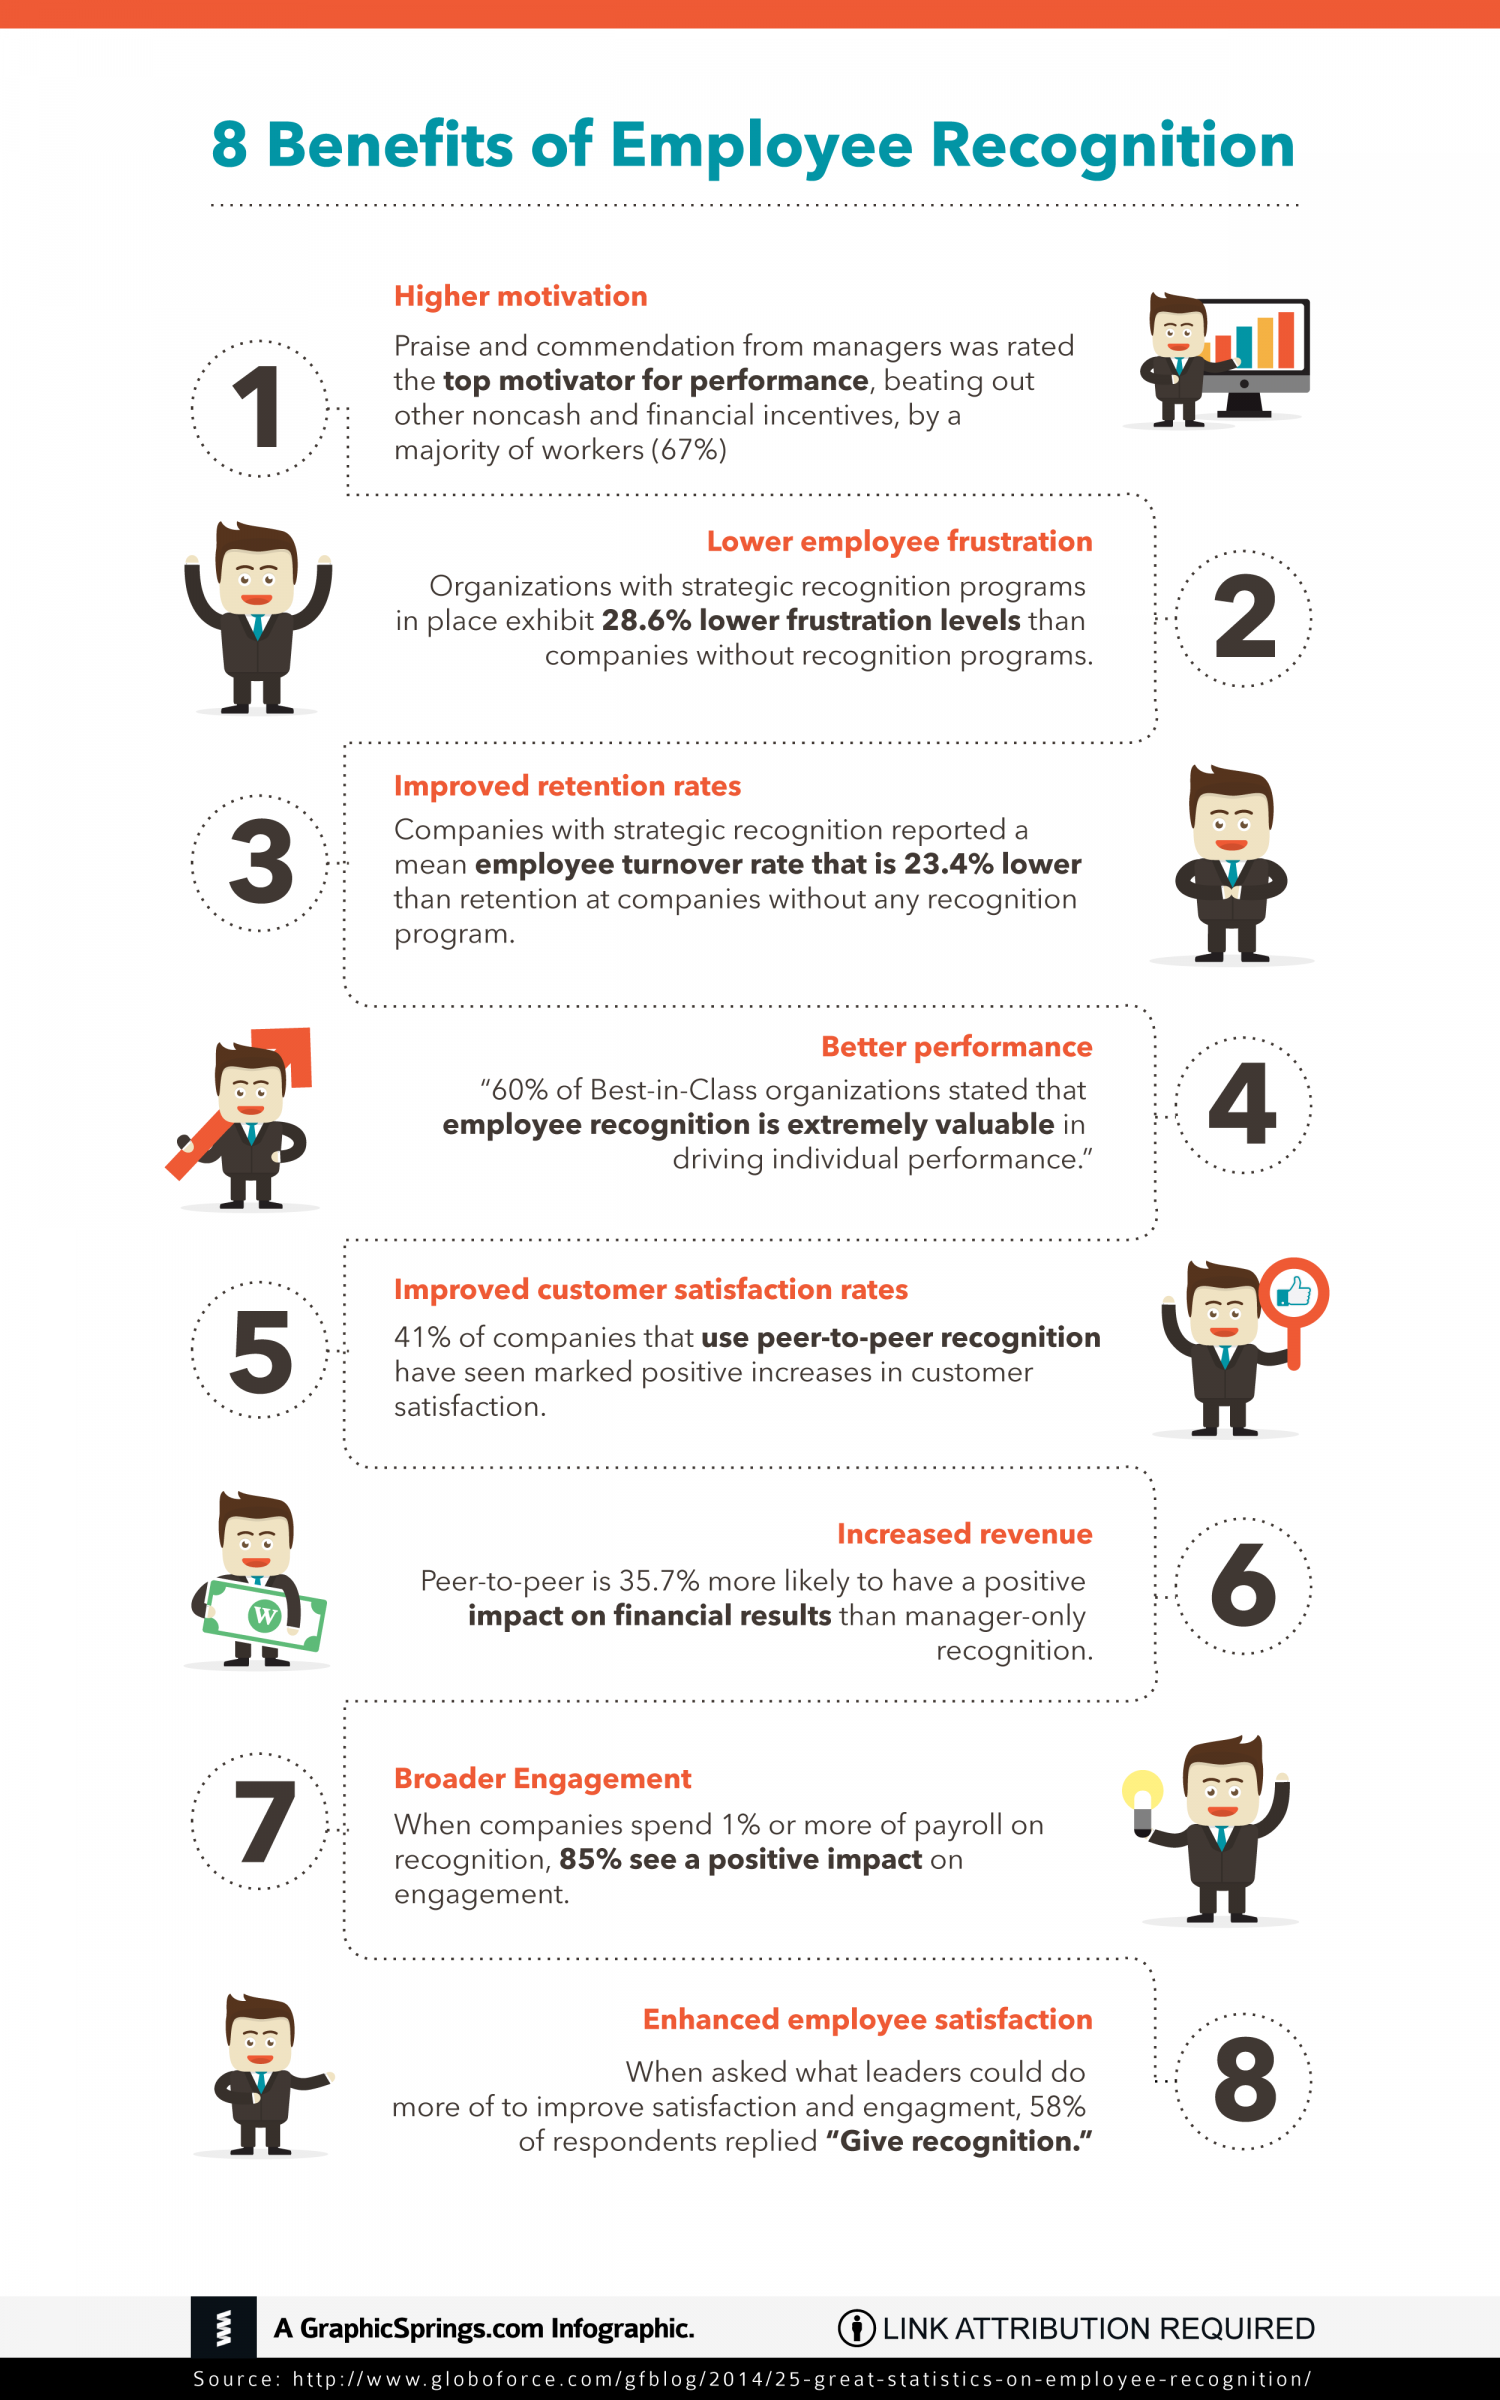 8 benefits of employee recognition